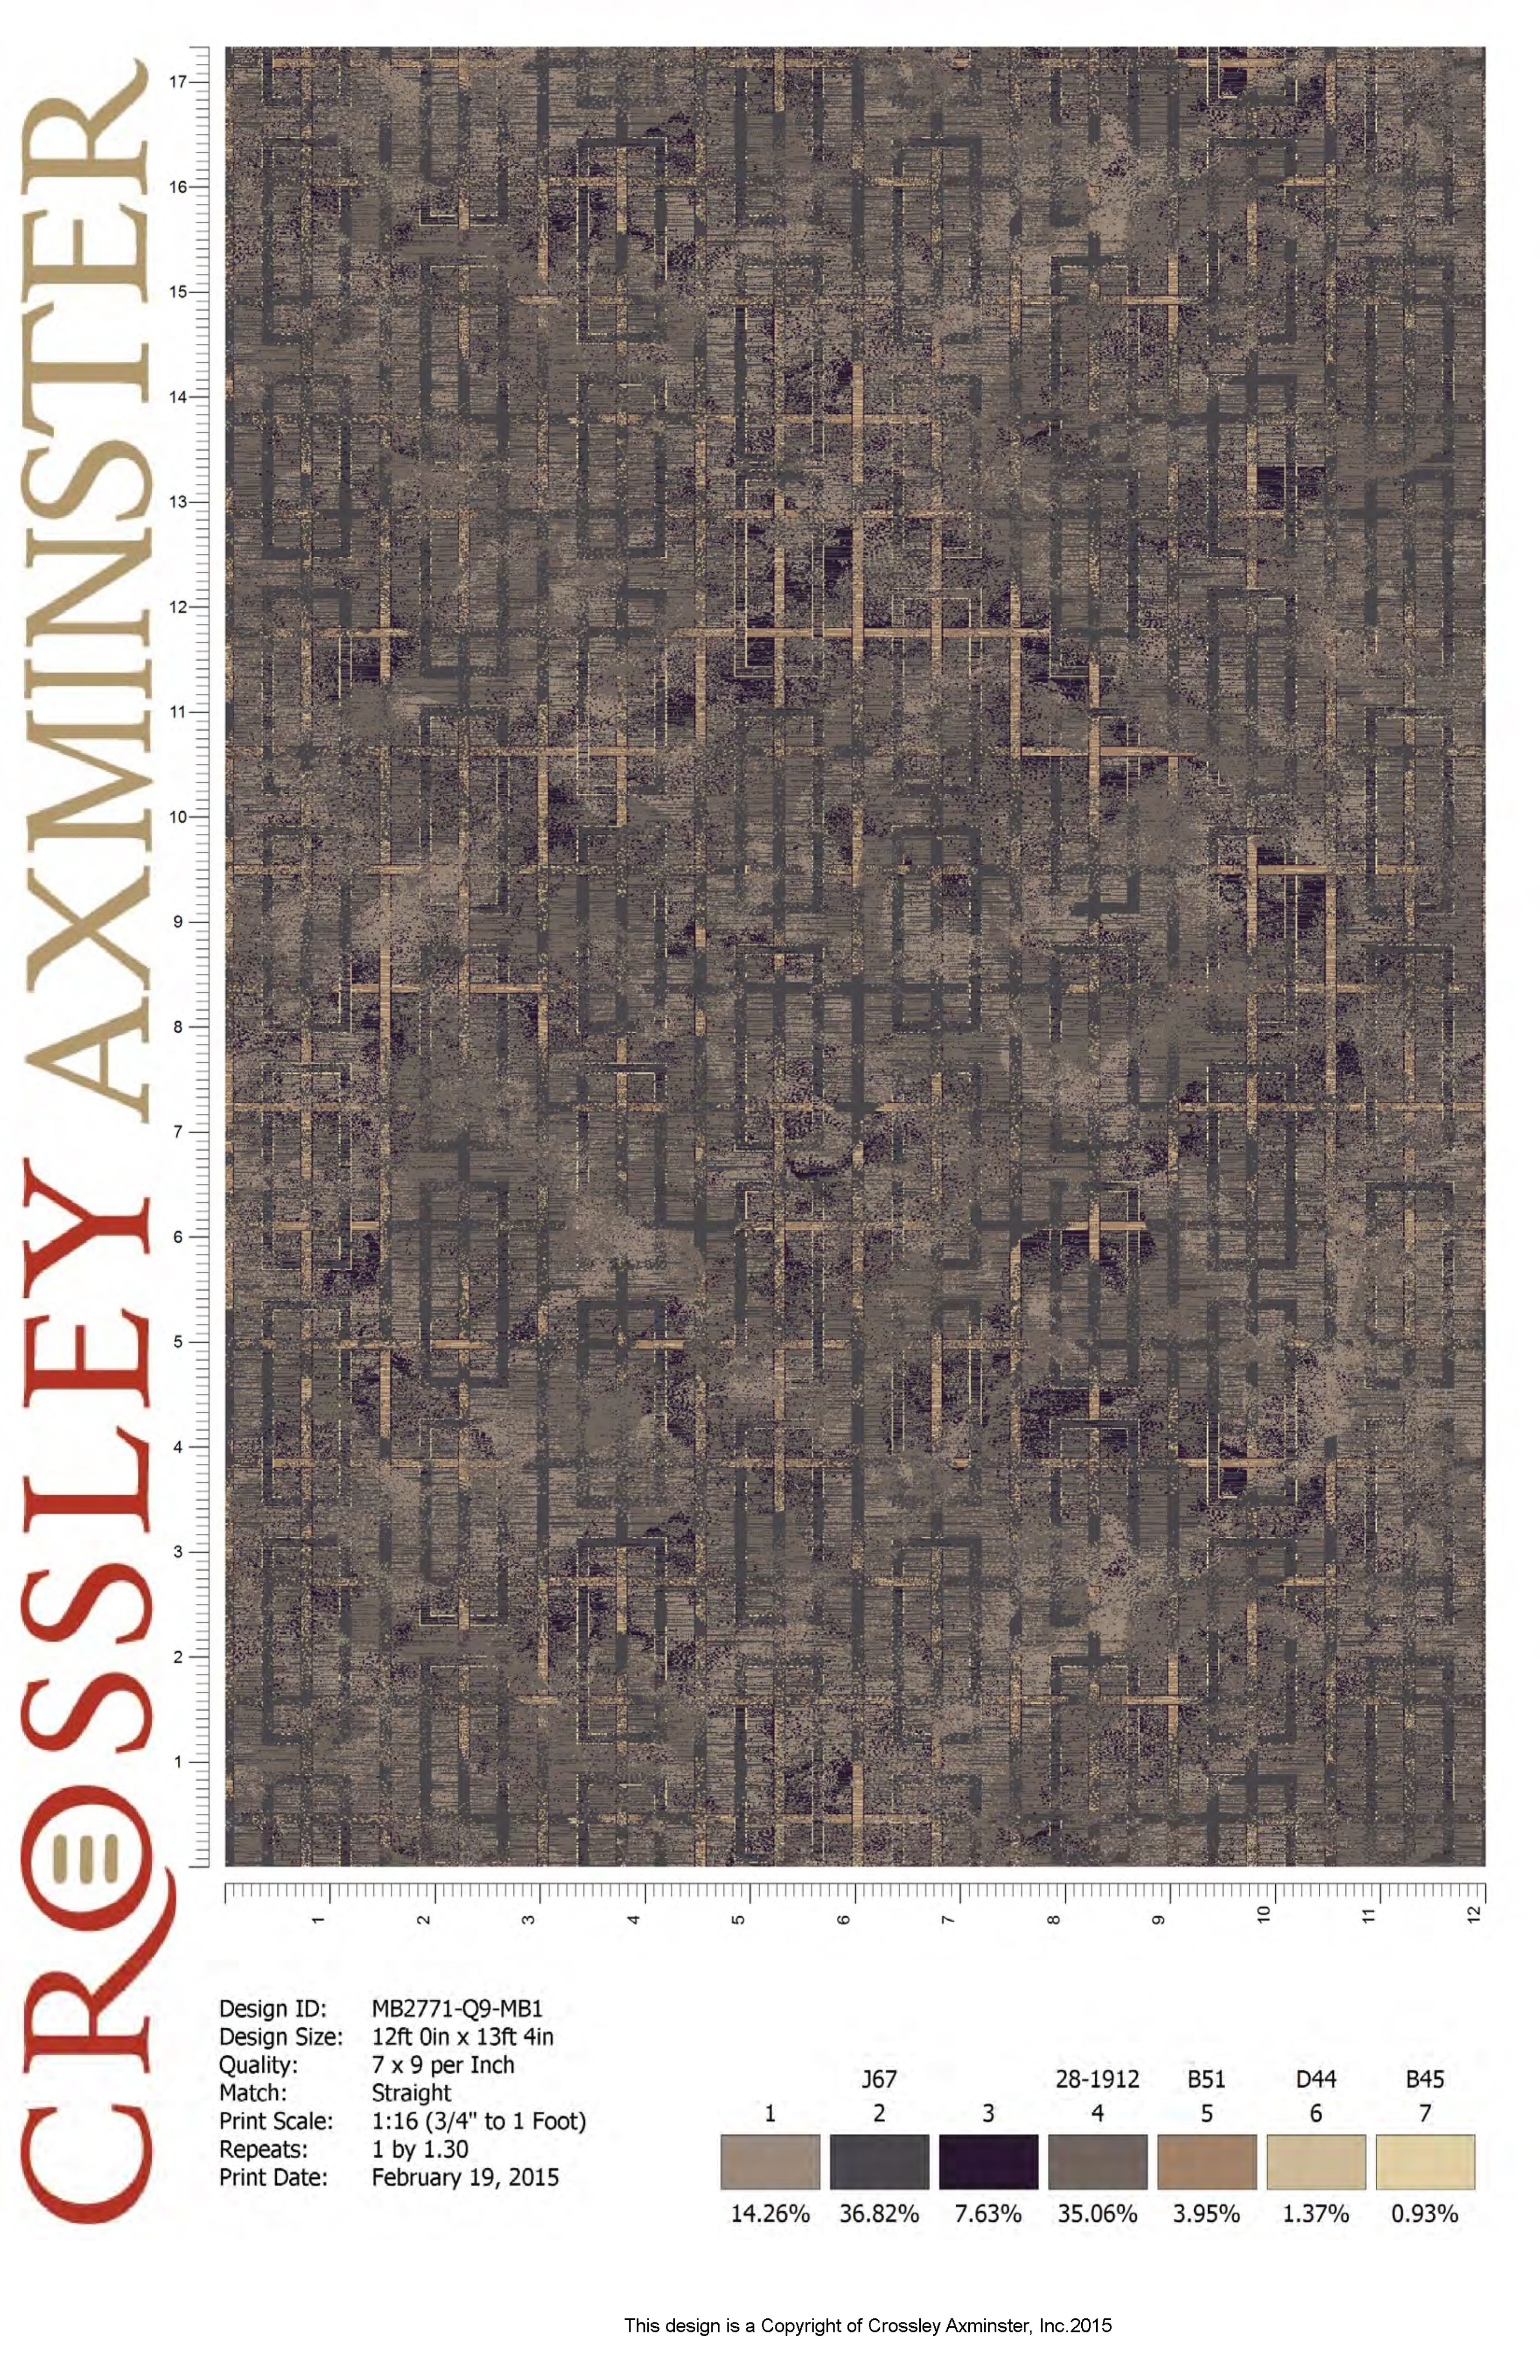 Pin by Andrew Miller on Crossley Axminster Patterns